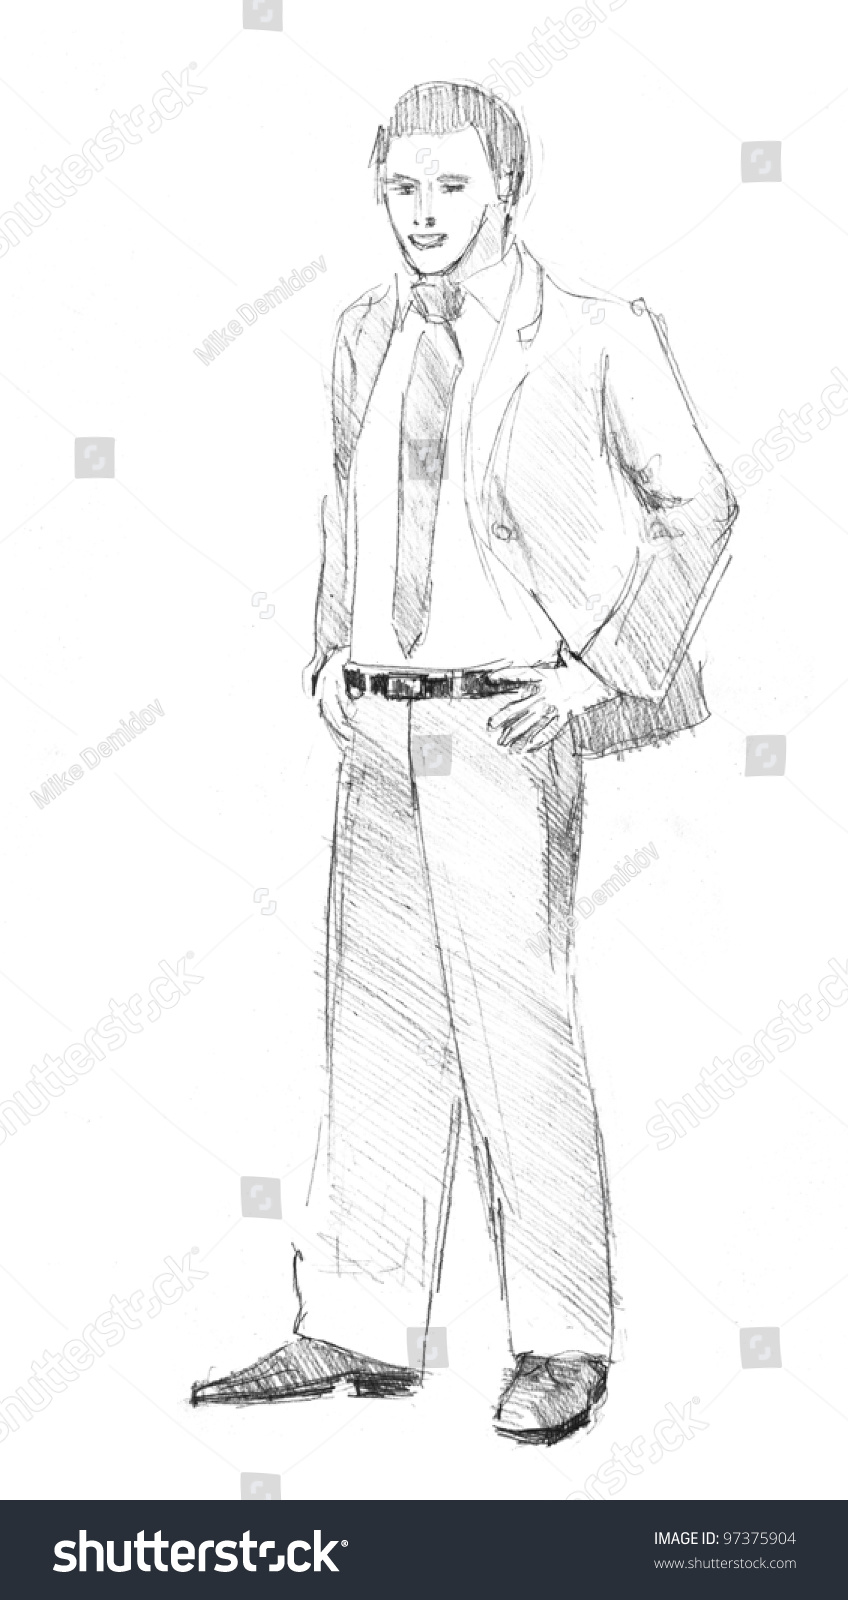 Pencil drawing of a young business man